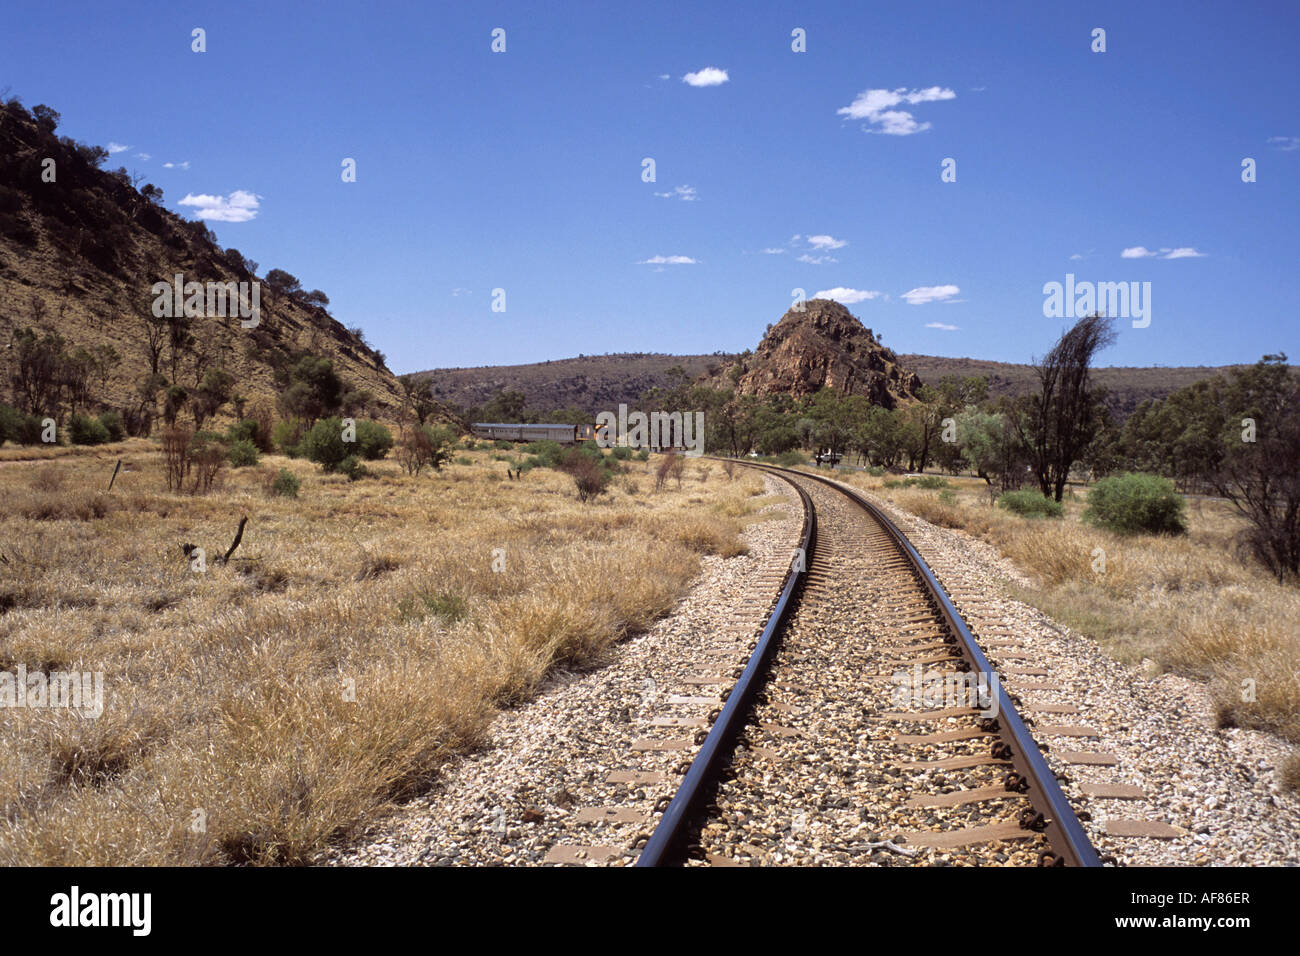 Train Tracks and The Ghan Train, Near Alice Springs, Northern Territory, Australia - Stock Image